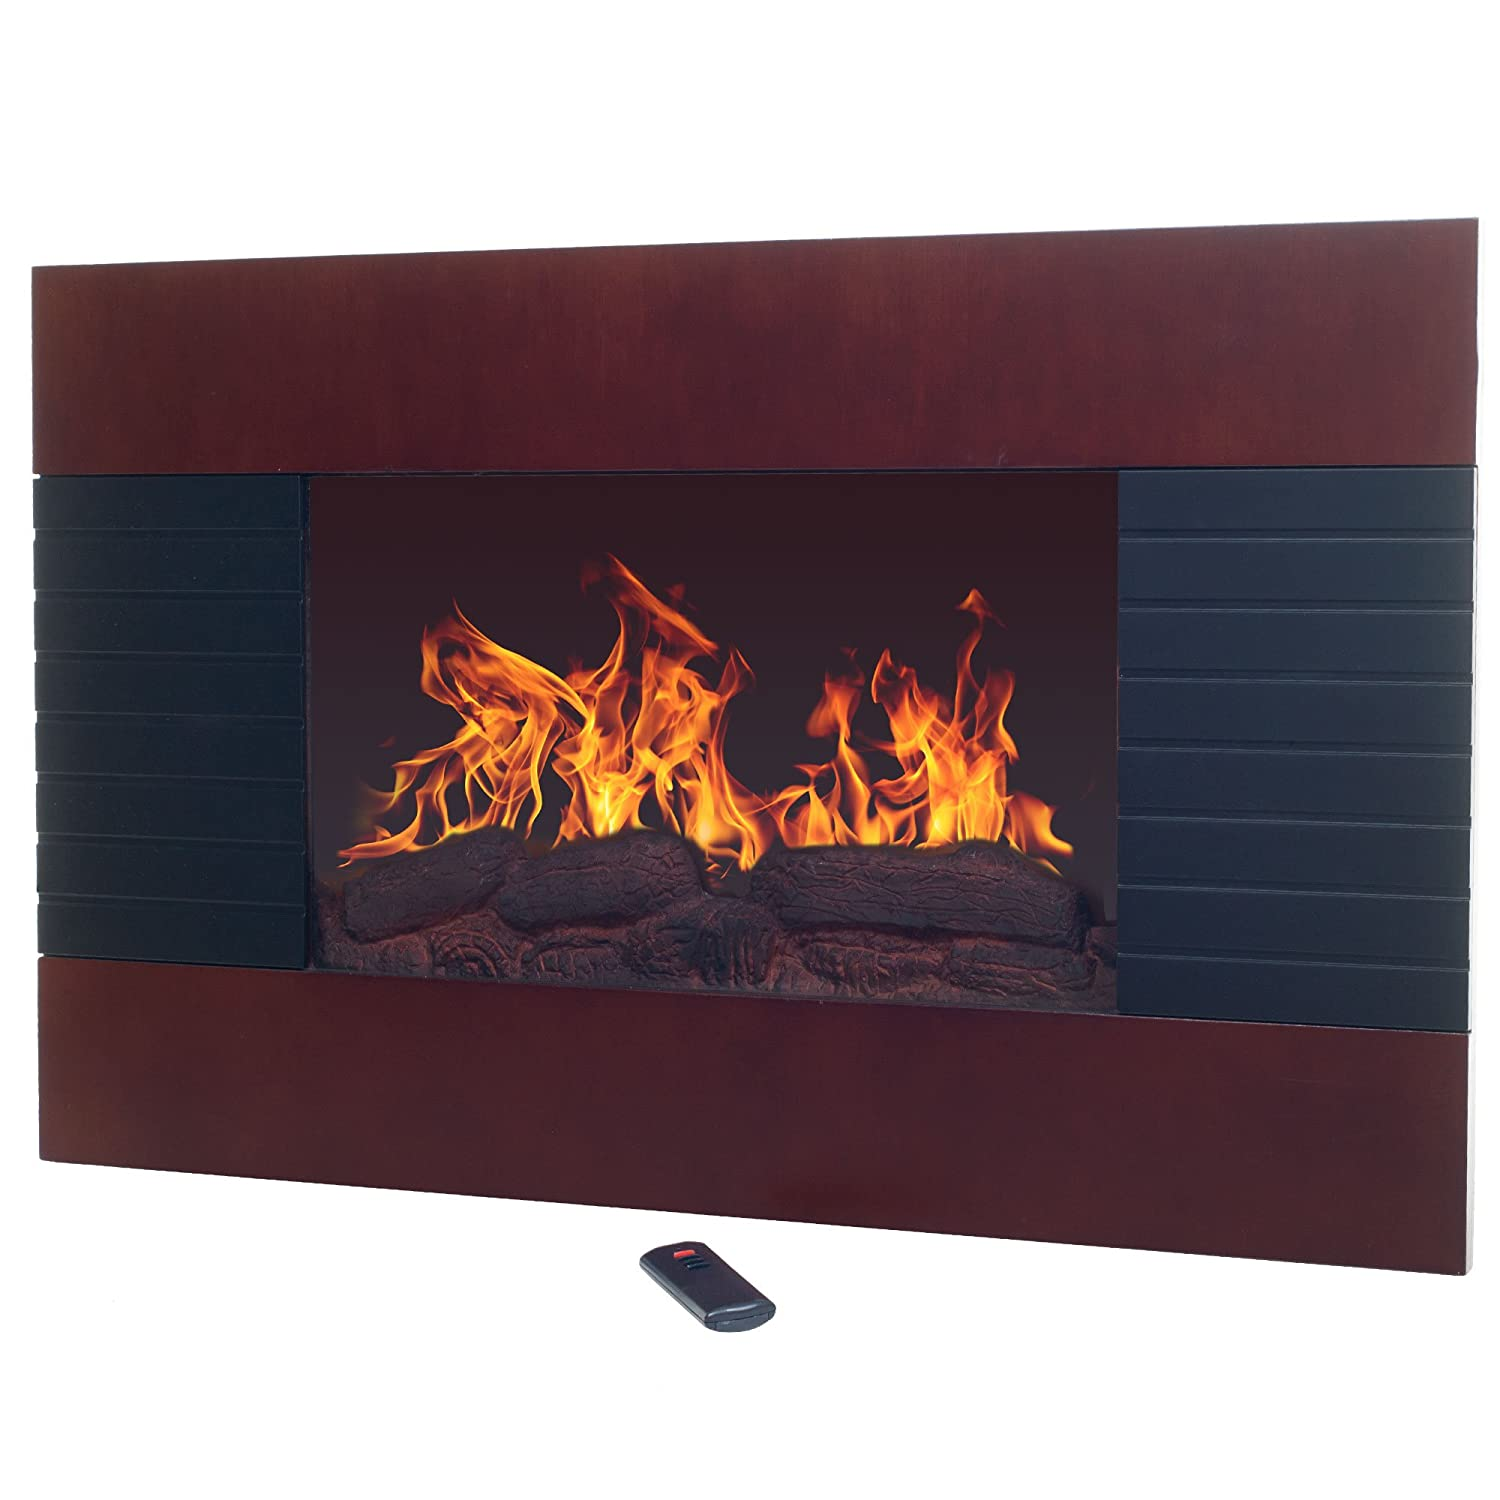 Northwest 80EF422S Electric Fireplace with Wall Mount and Remote